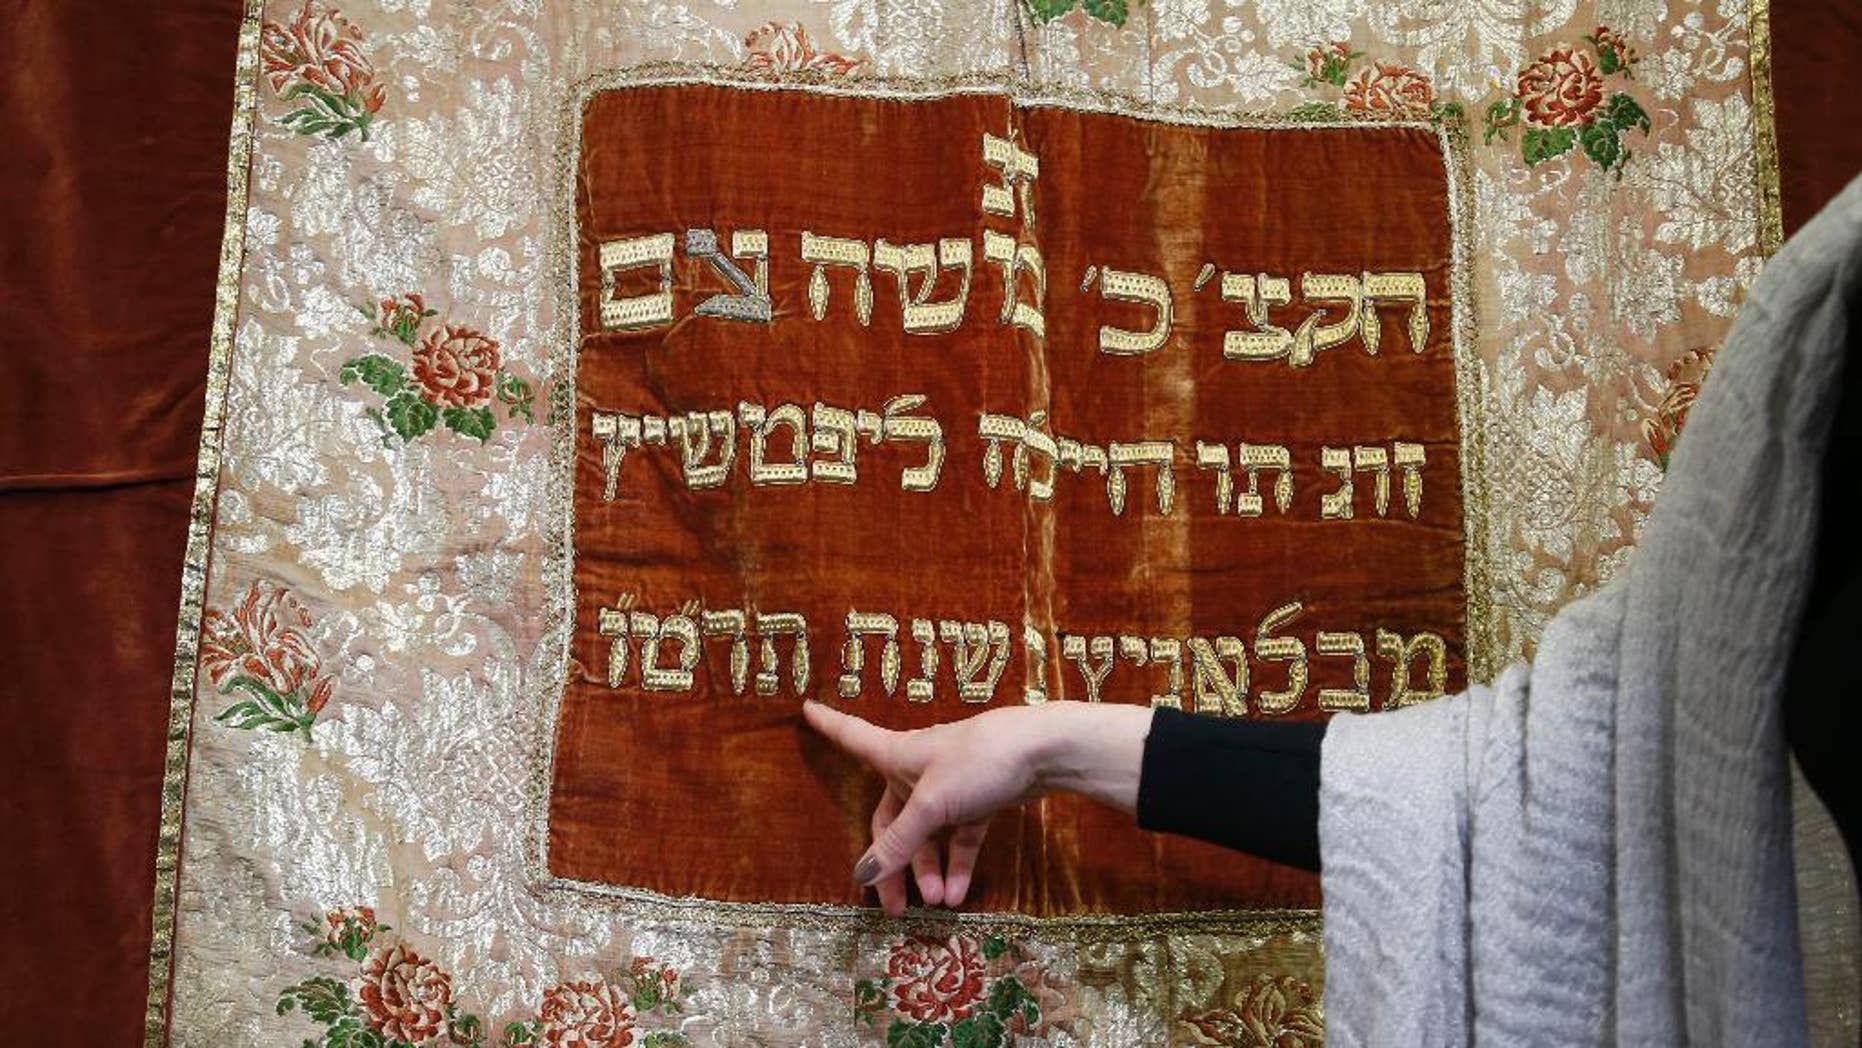 Visual arts curator of Jewish Museum in Prague Michaela Sidenberg points to details on a synagogue textile in Prague, Czech Republic, Wednesday, March 26, 2014. This textile stolen by the Nazis during the World War II has returned to the Czech Republic after it has been found in the United States. It is for the first time that a ritual Jewish property that was stolen during the Holocaust has been traced abroad and returned home. (AP Photo/Petr David Josek)